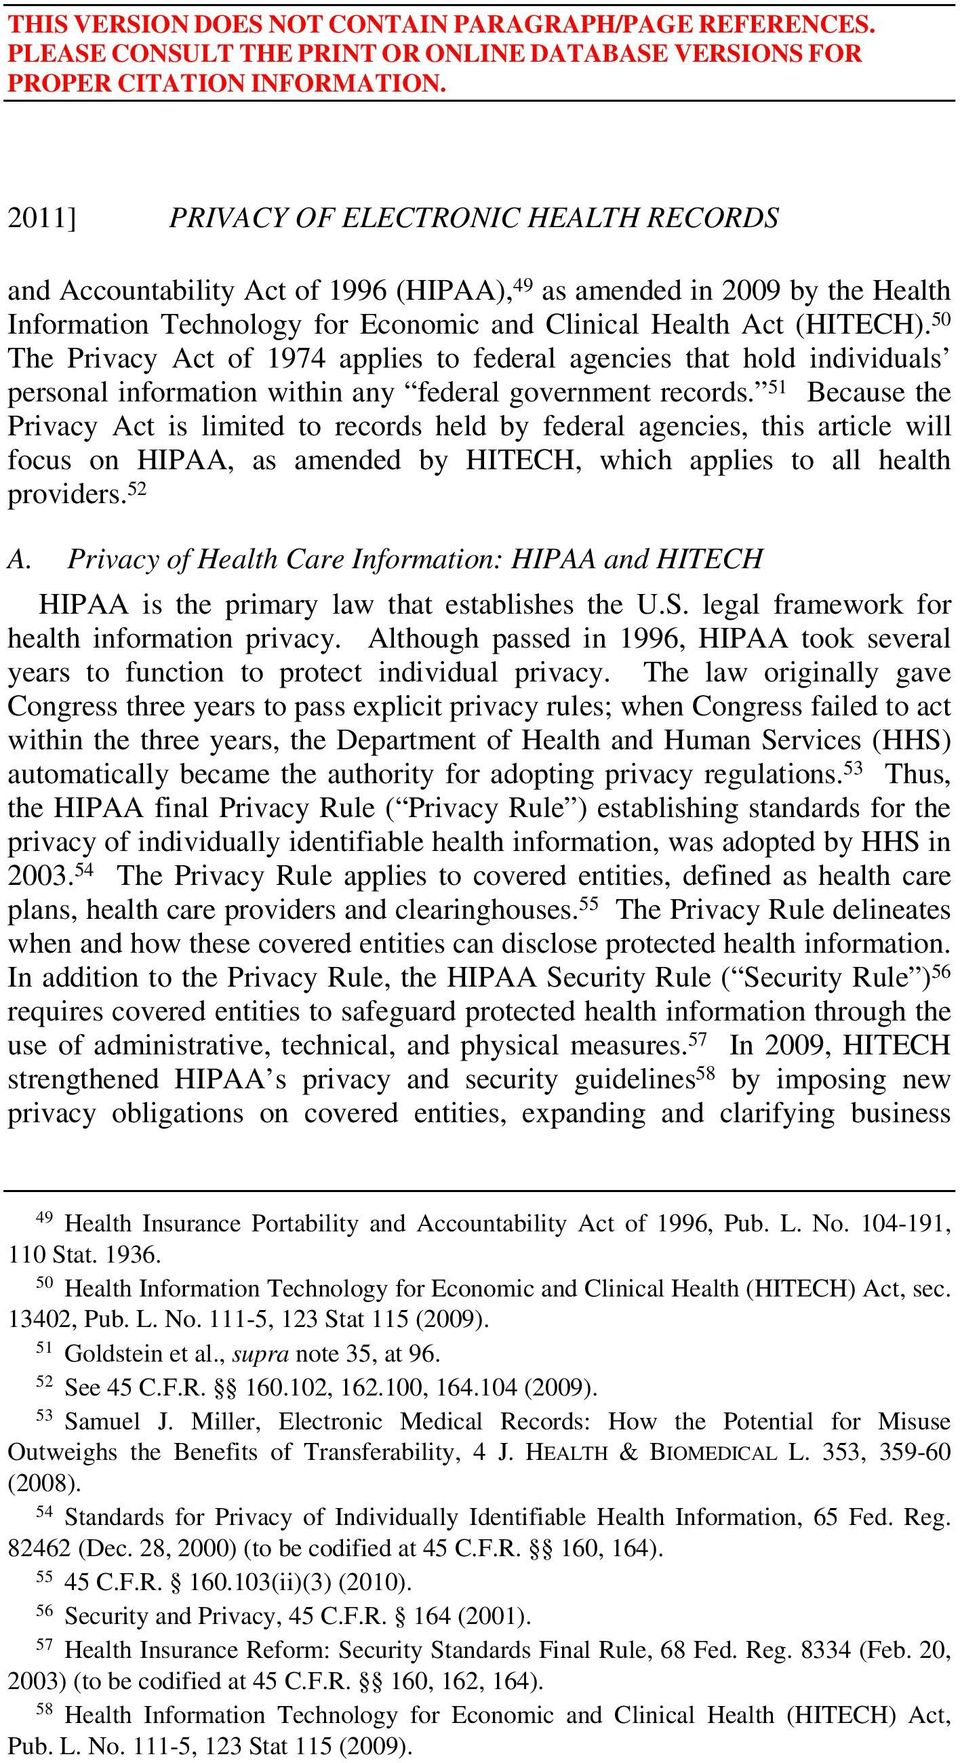 51 Because the Privacy Act is limited to records held by federal agencies, this article will focus on HIPAA, as amended by HITECH, which applies to all health providers. 52 A.